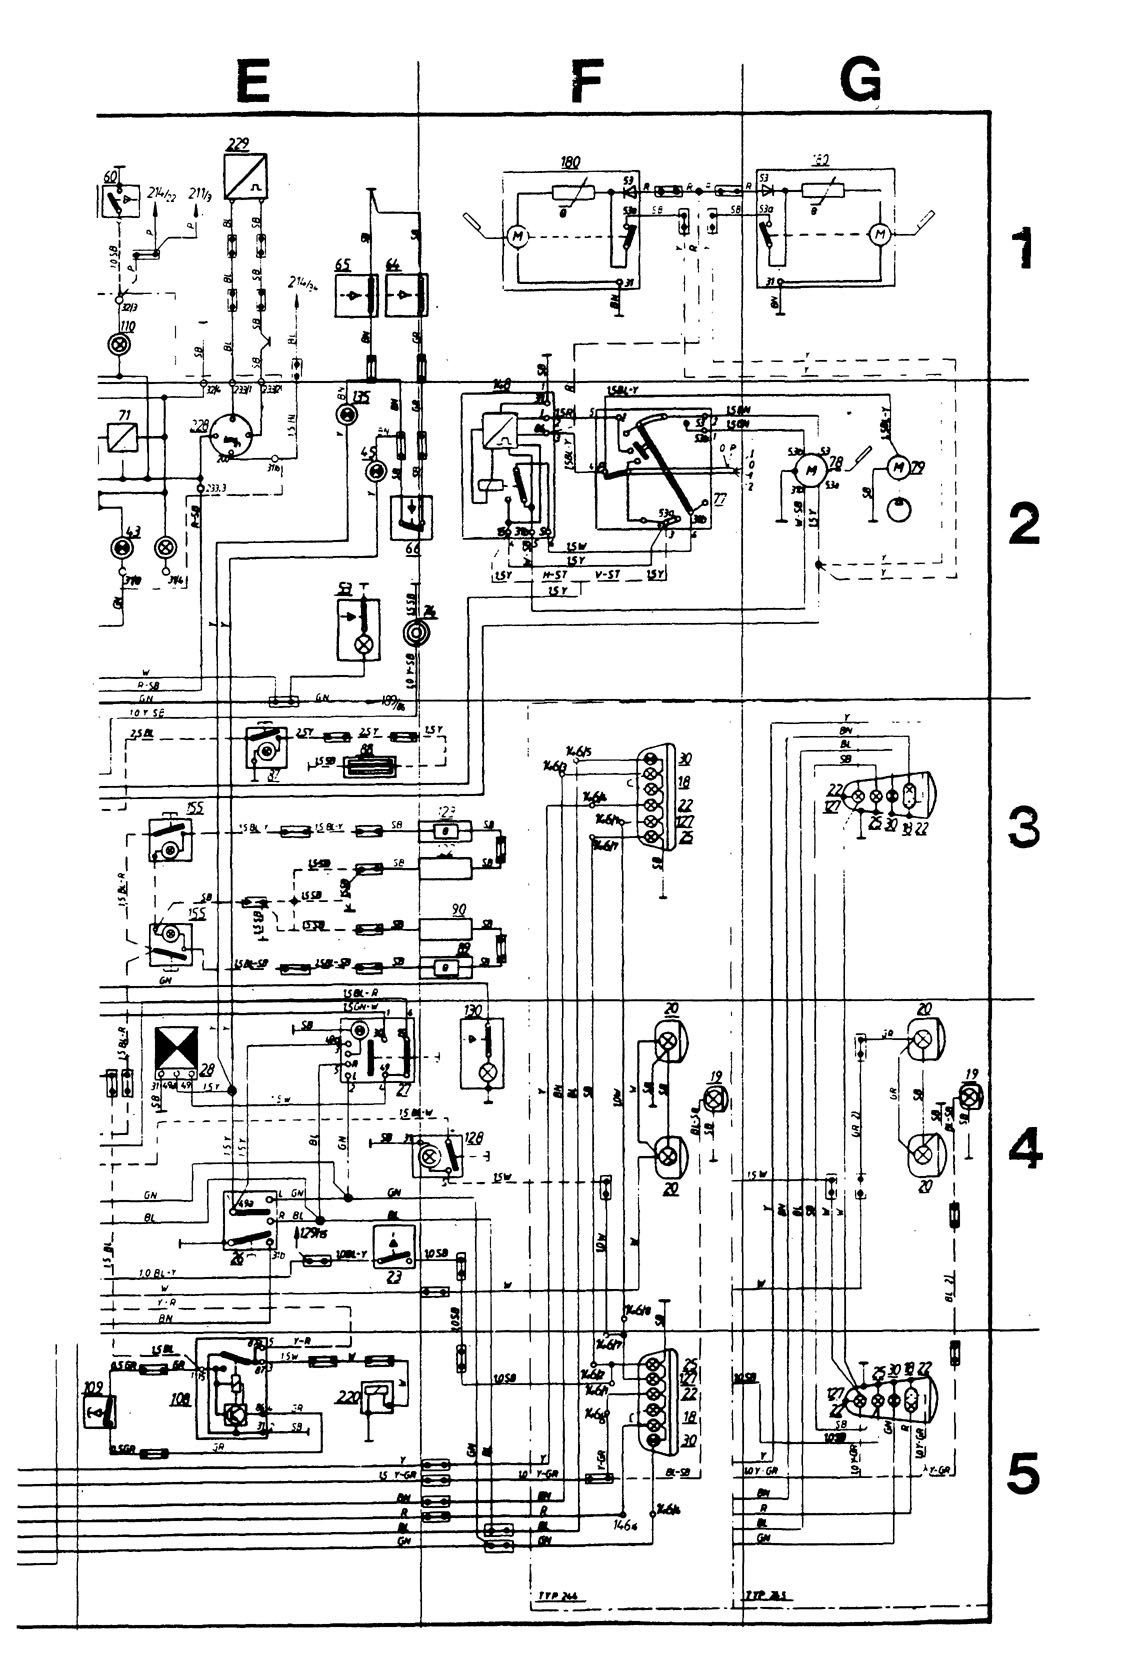 hight resolution of gt5000b thermostat wiring diagram